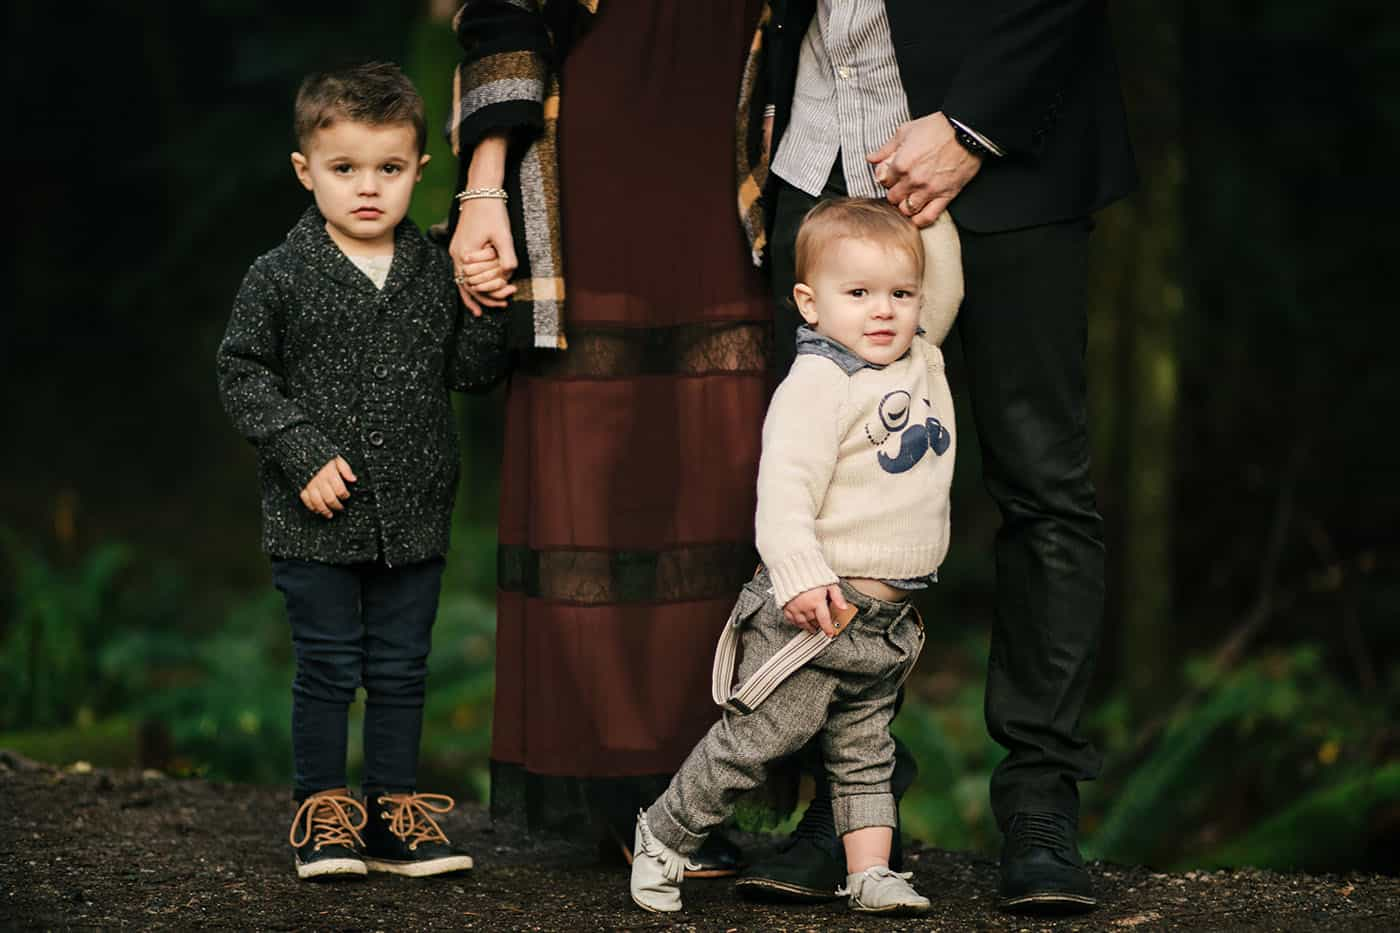 Parents are photographed from the waist-down, holding hands with their two toddler sons who are seen full-length in their fall outfits.